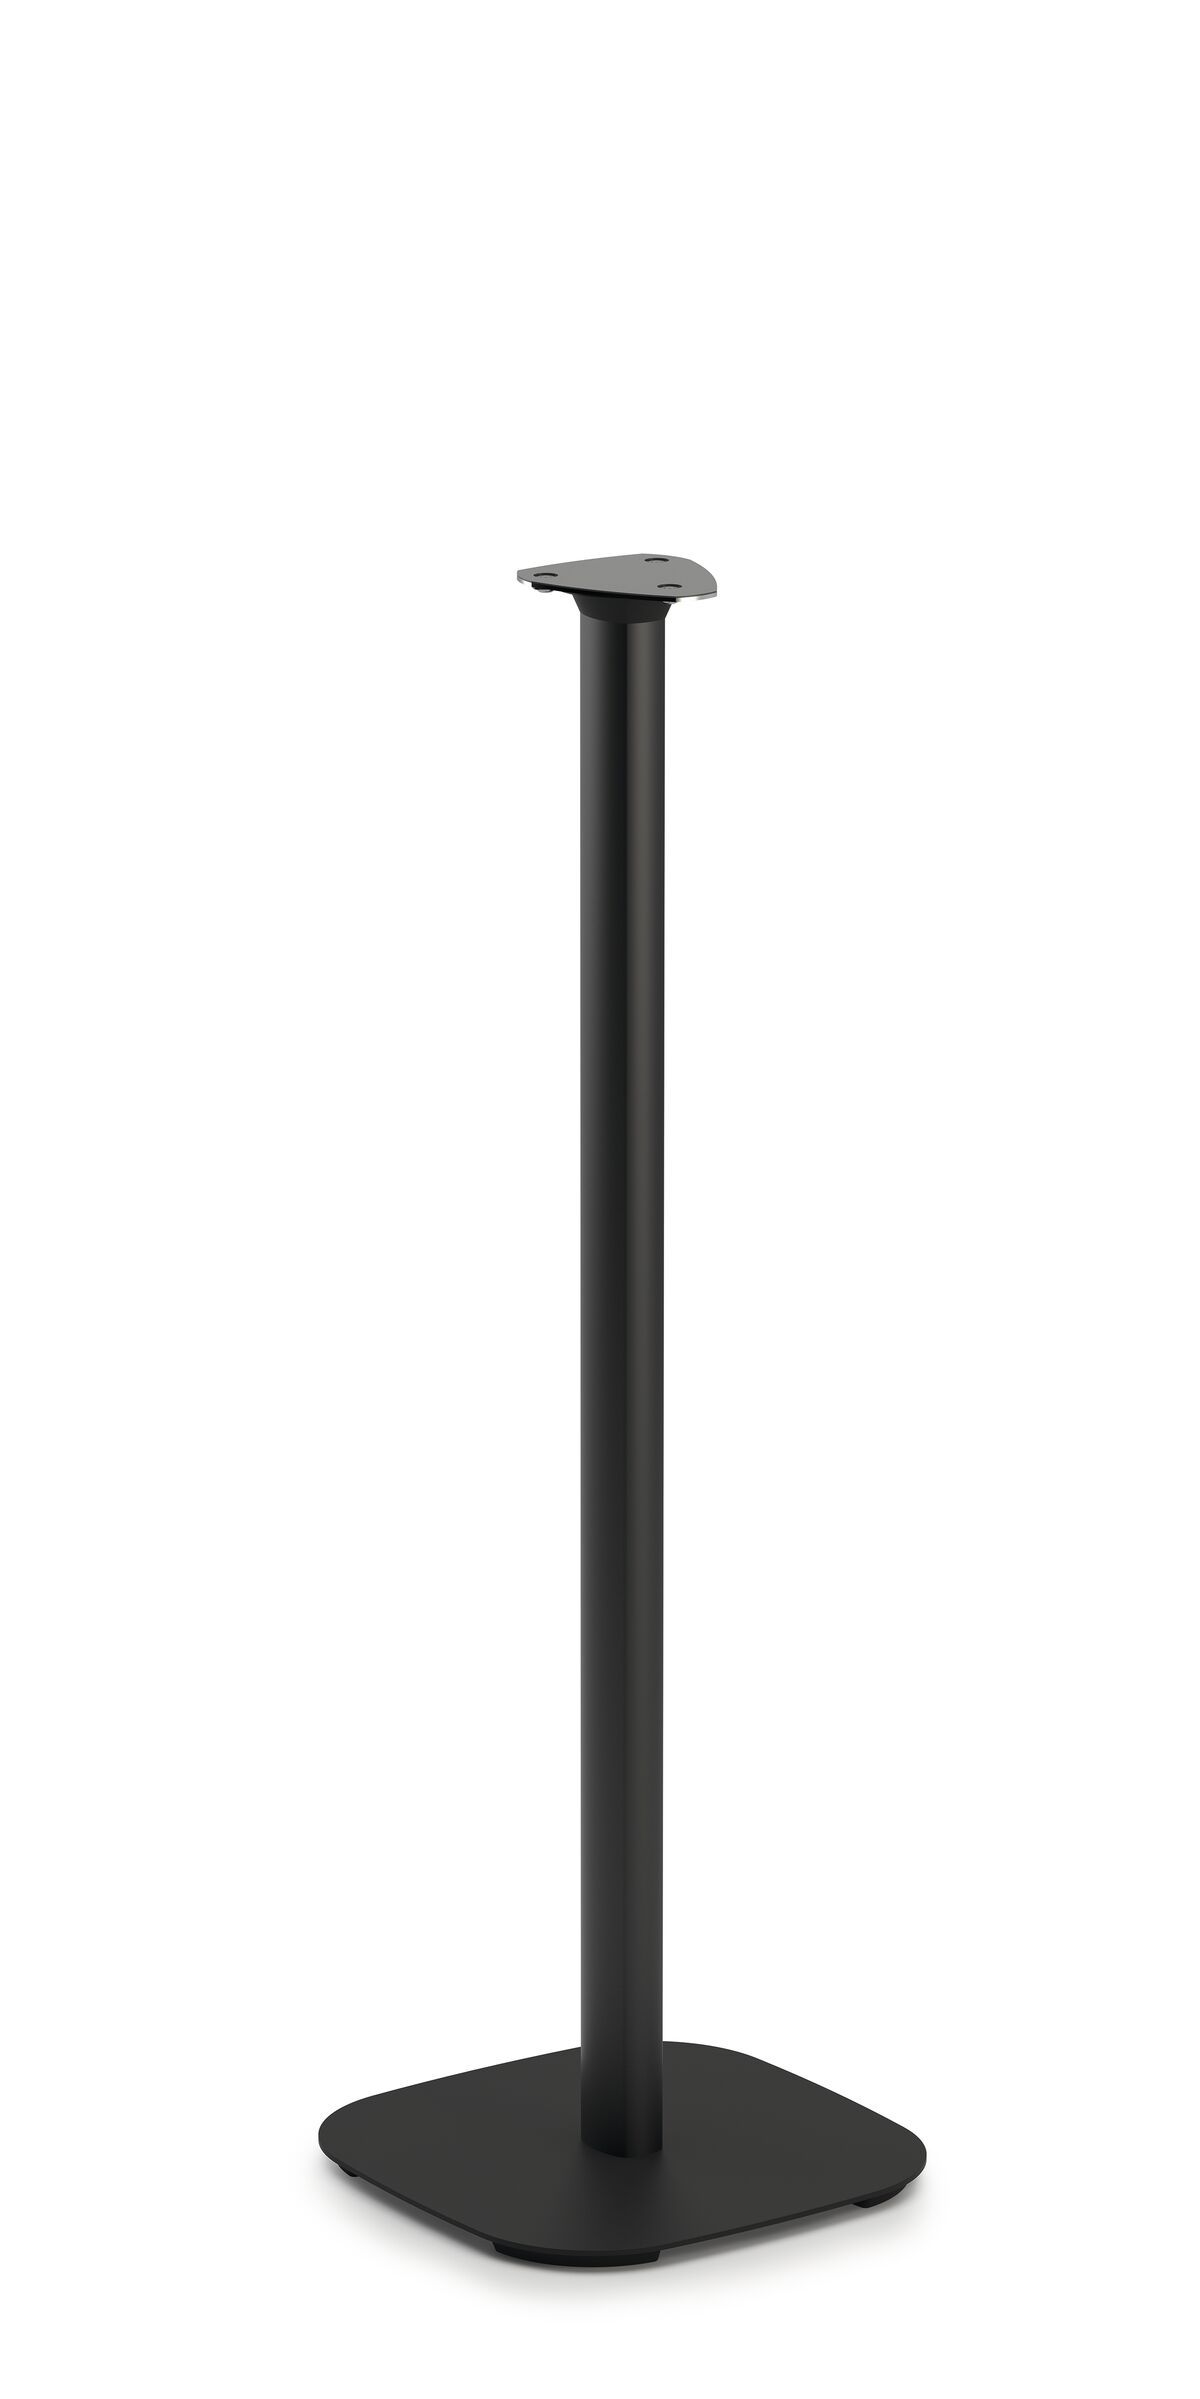 Vogel's SOUND 5313 Speaker Stand for Denon HEOS 1 / HEOS 3 (black) - Product